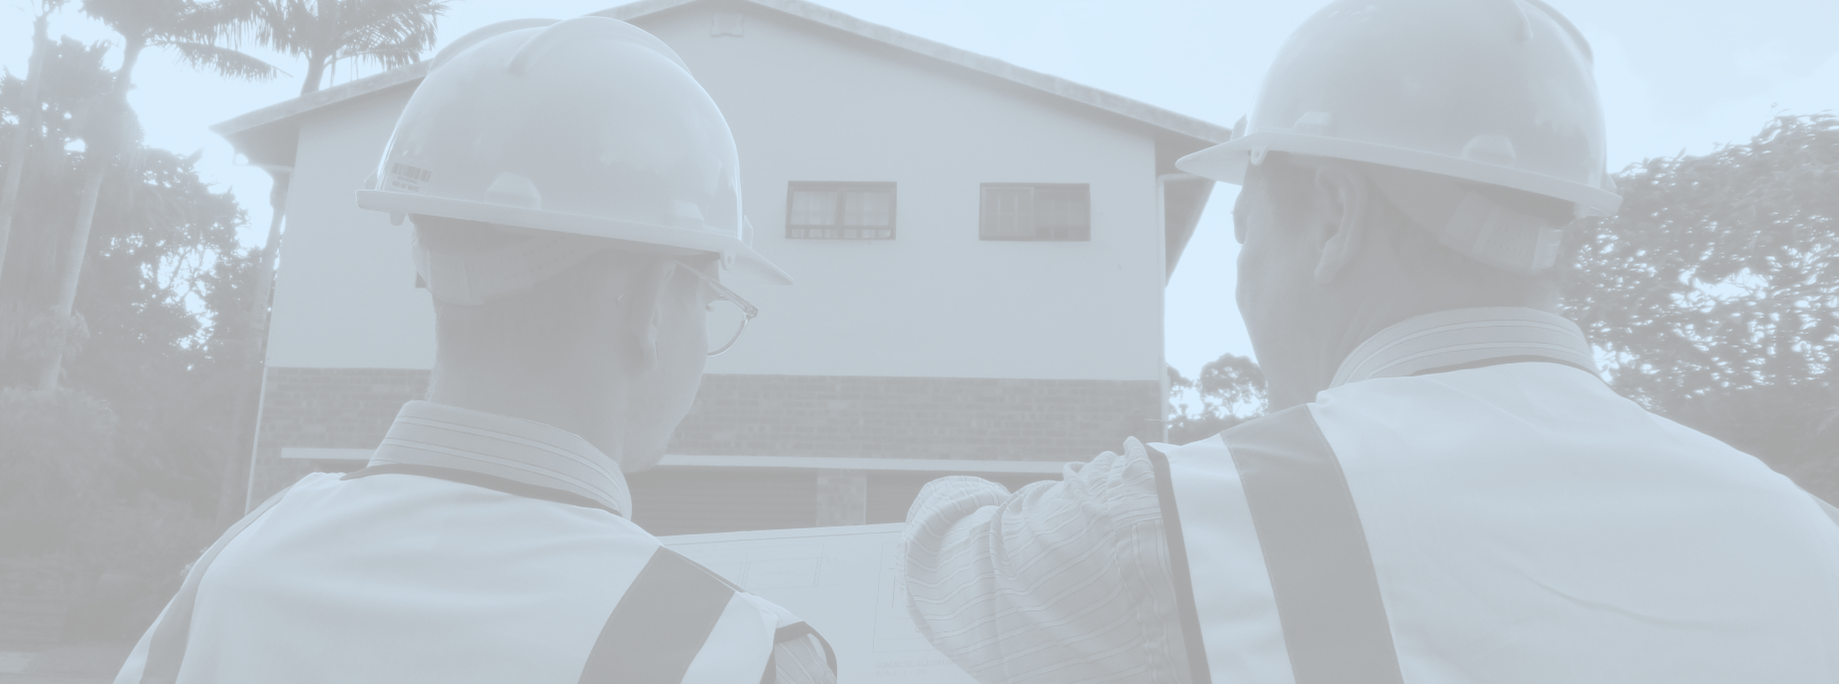 heeger engineers are Structural Engineers based in Durban. men looking at plans on construction site.